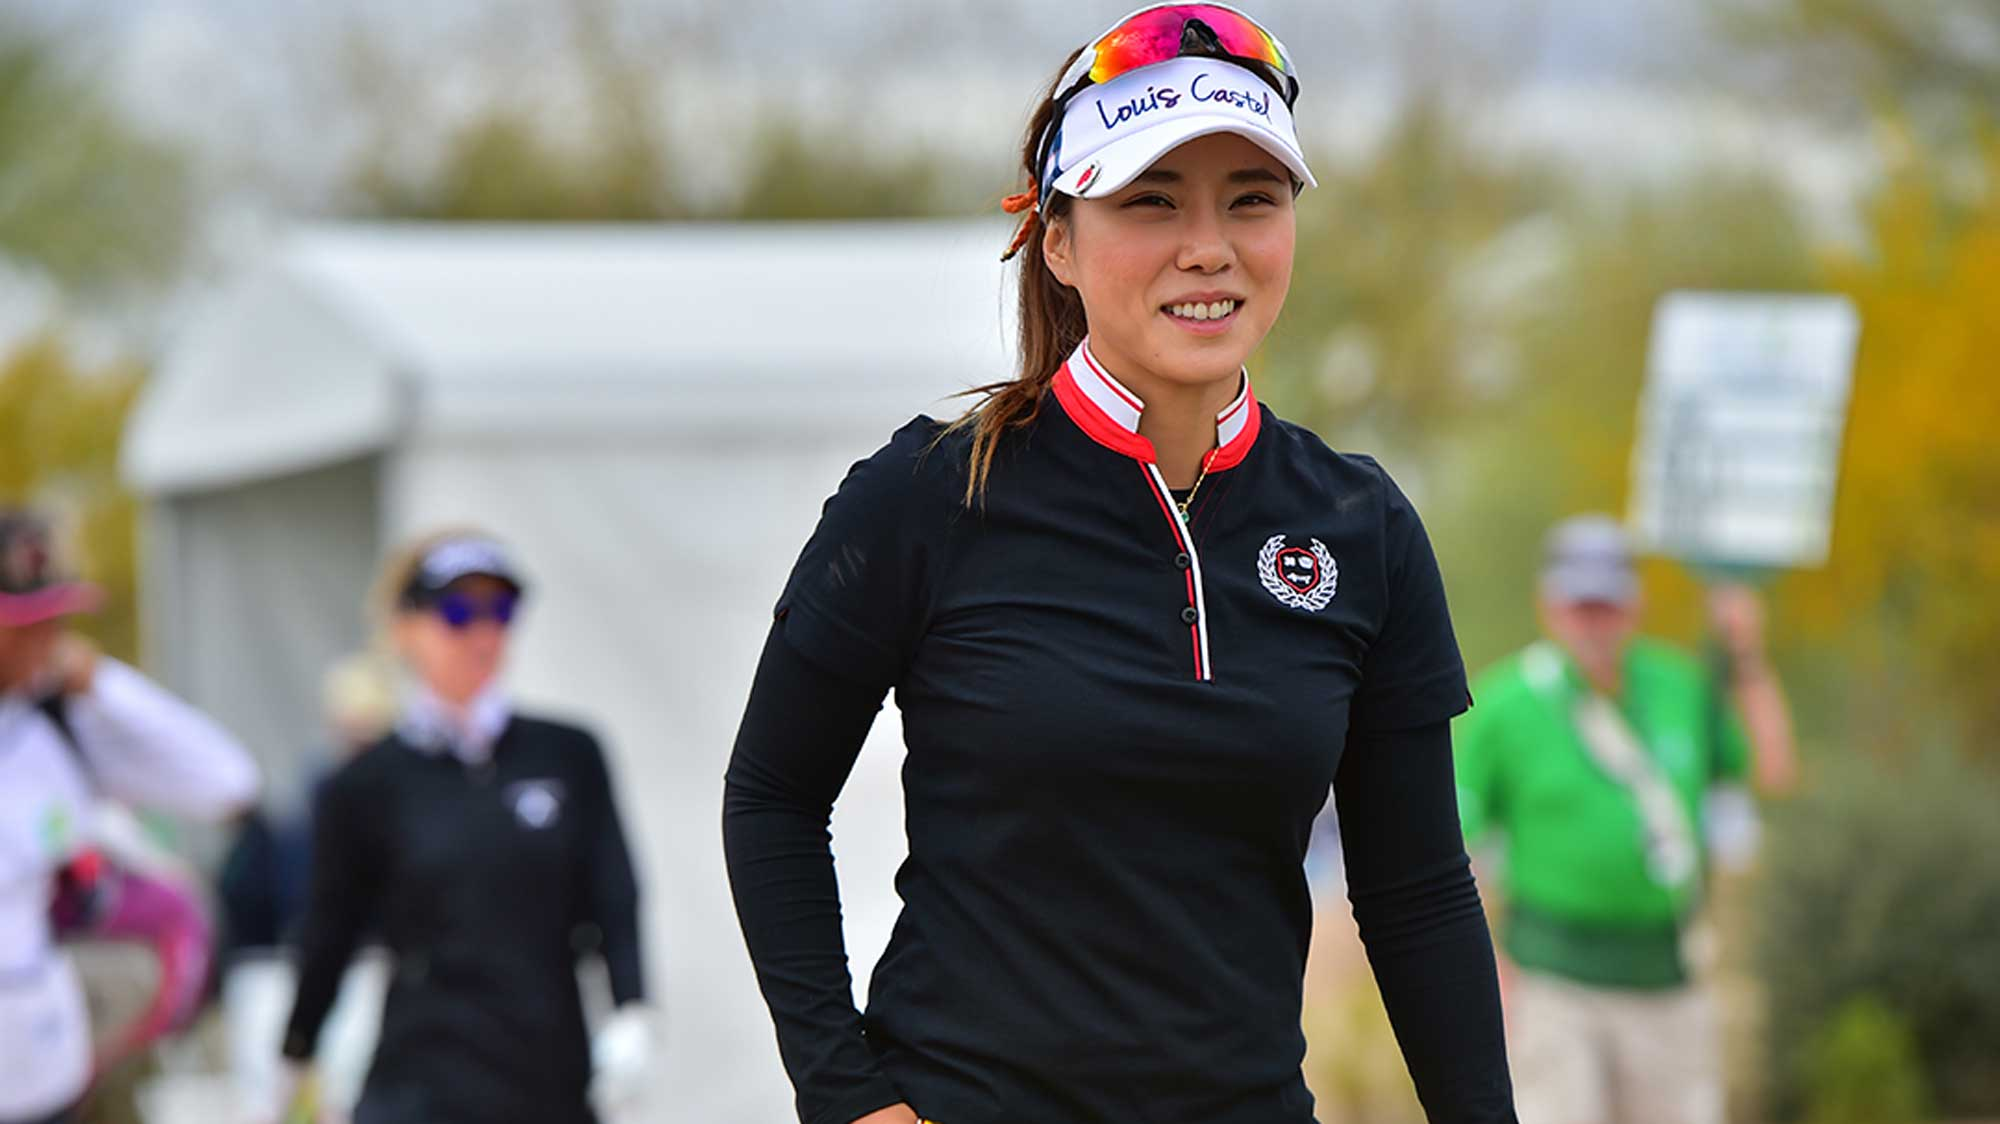 Hee Young Park Smile at Founders Cup